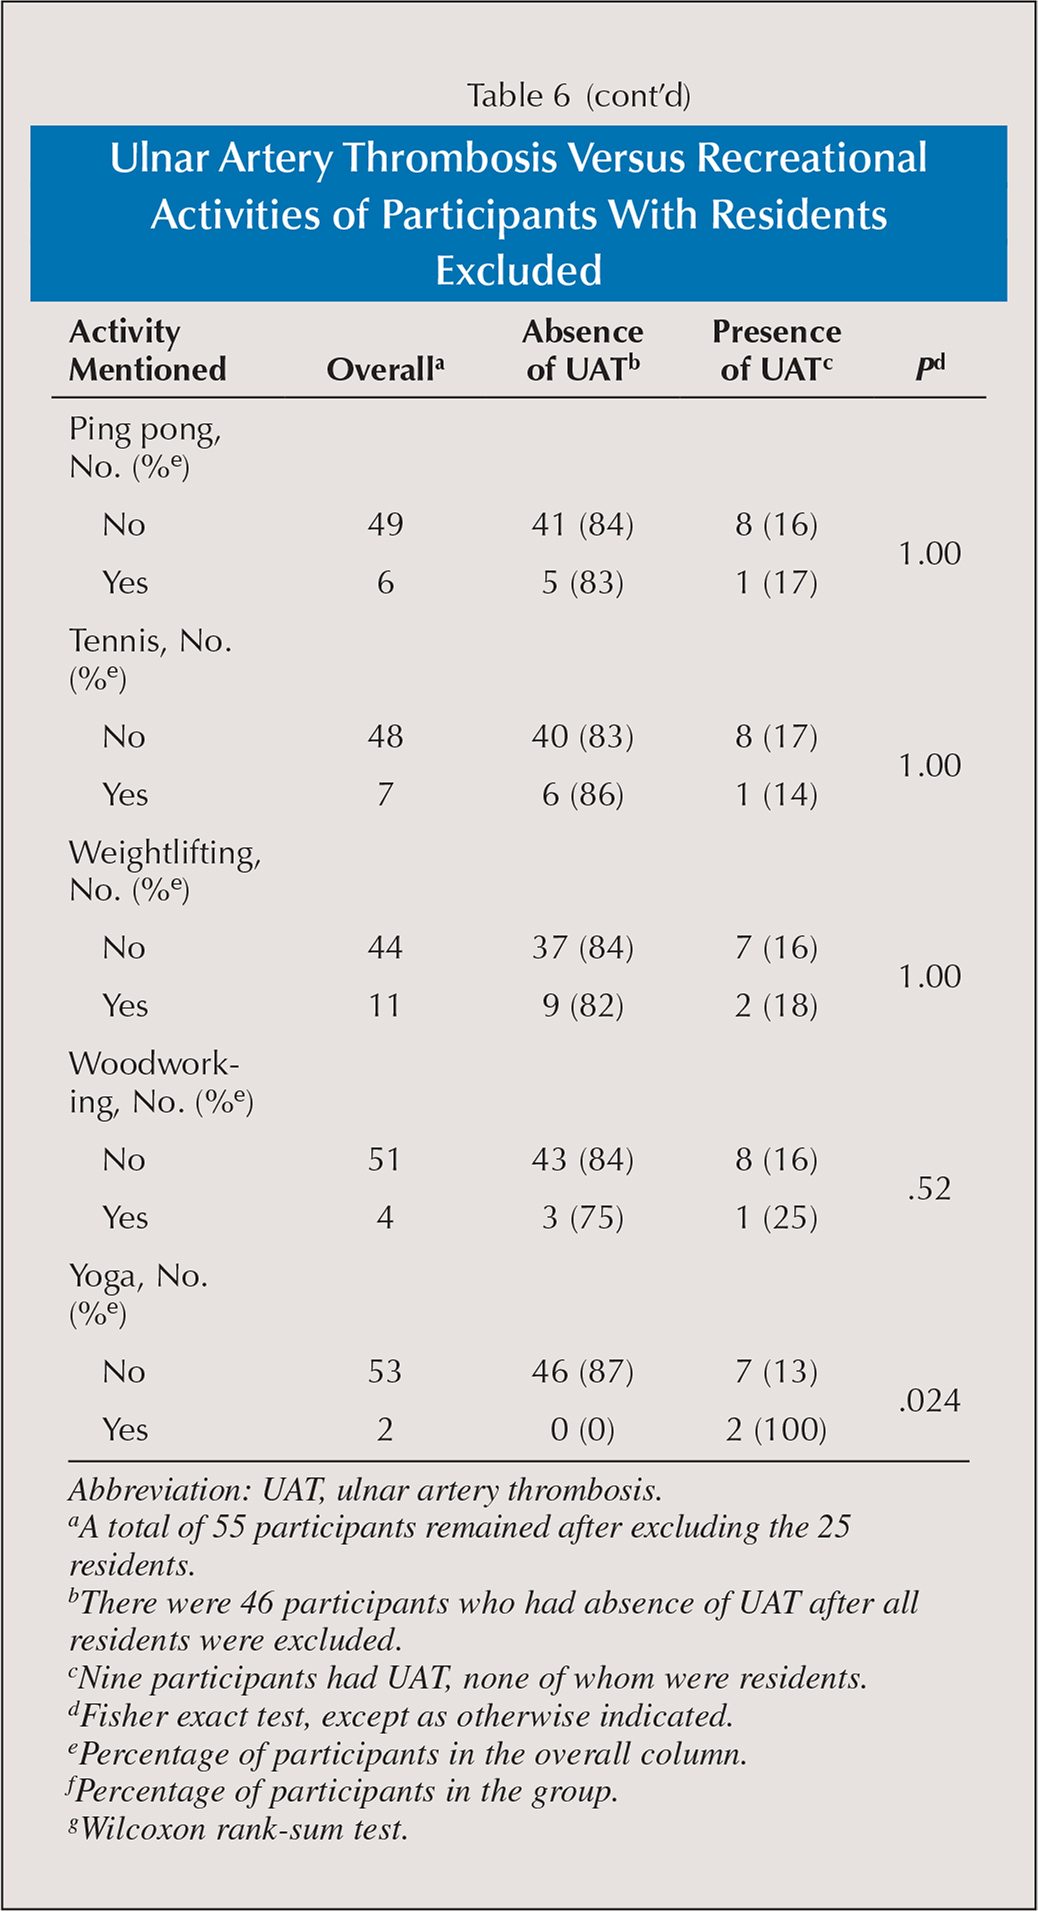 Ulnar Artery Thrombosis Versus Recreational Activities of Participants With Residents Excluded